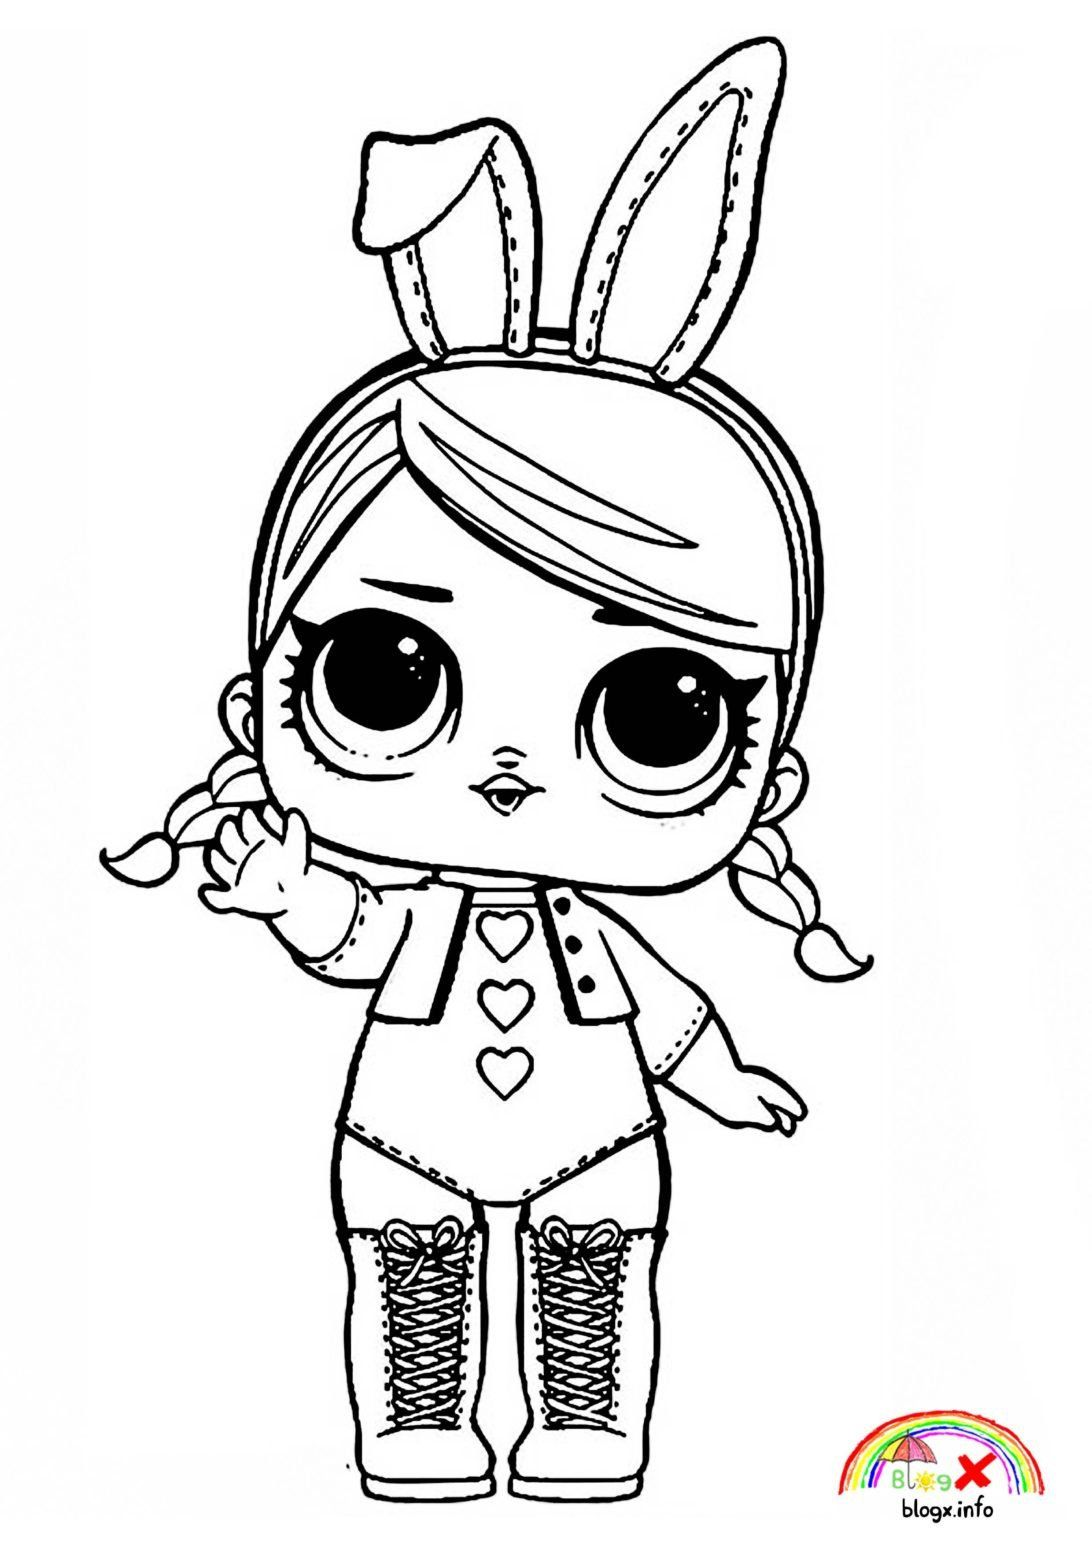 Lol Coloring Pages For Kids Coloring Pages Bunny Costume Lol Surprise Dolls Coloring In 2020 Mandala Coloring Pages Coloring Pages Coloring Books